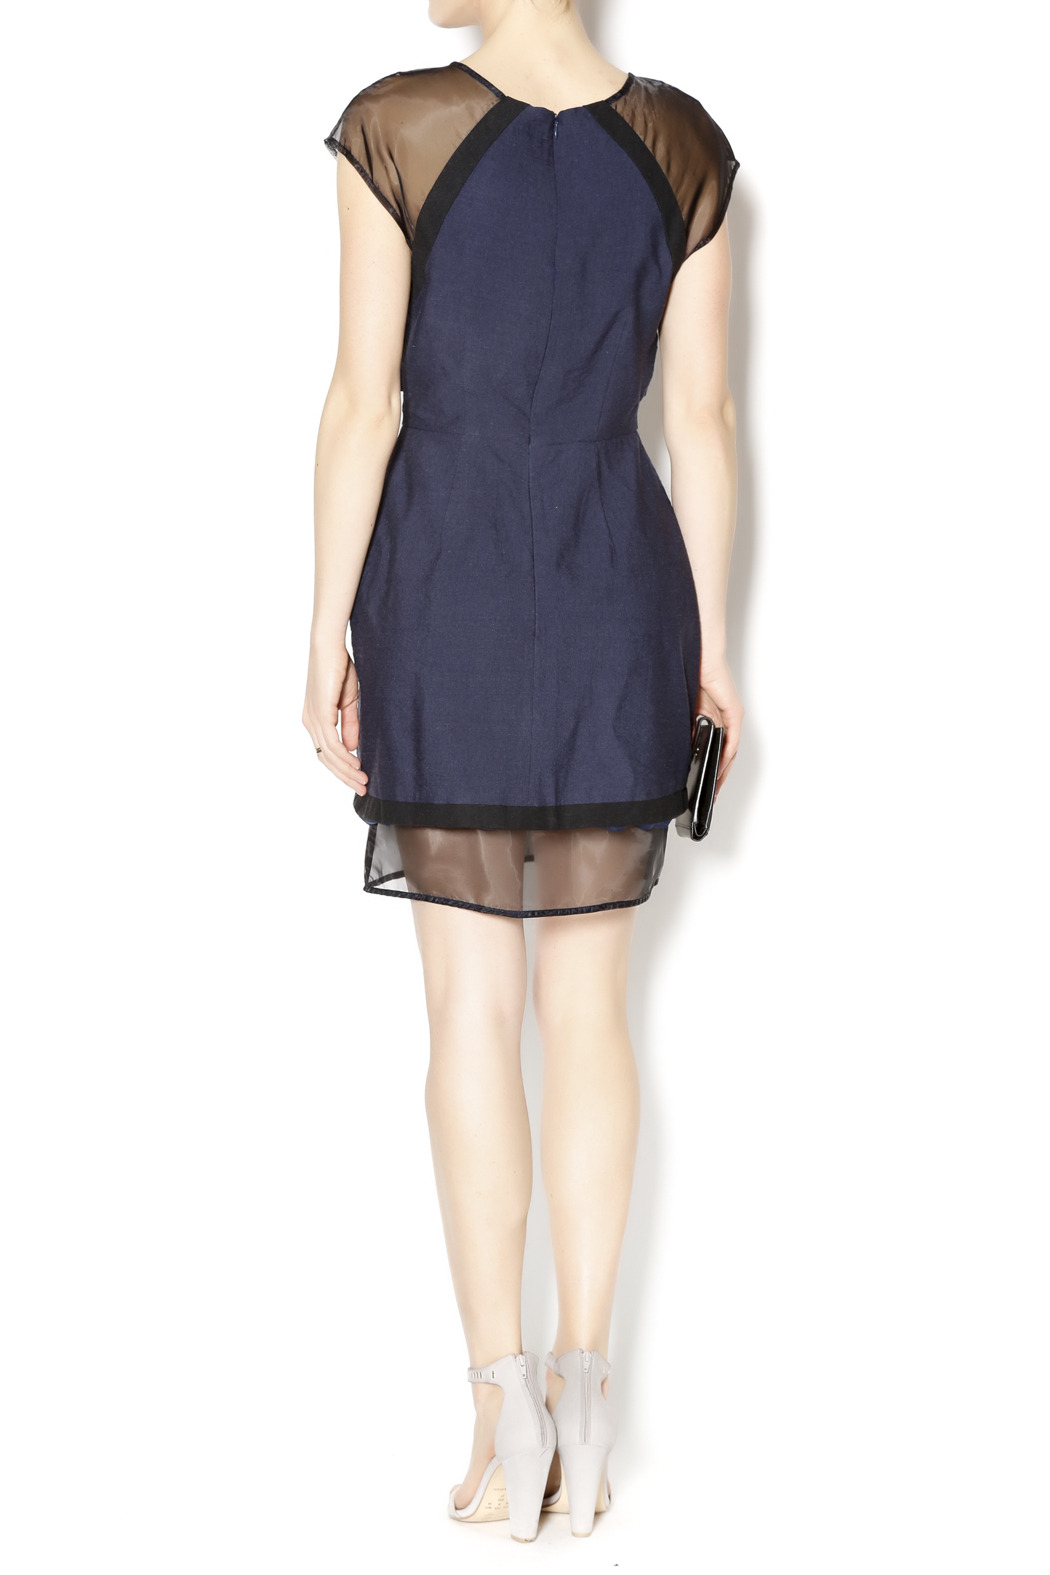 C/MEO COLLECTIVE Navy and Sheer Dress - Side Cropped Image